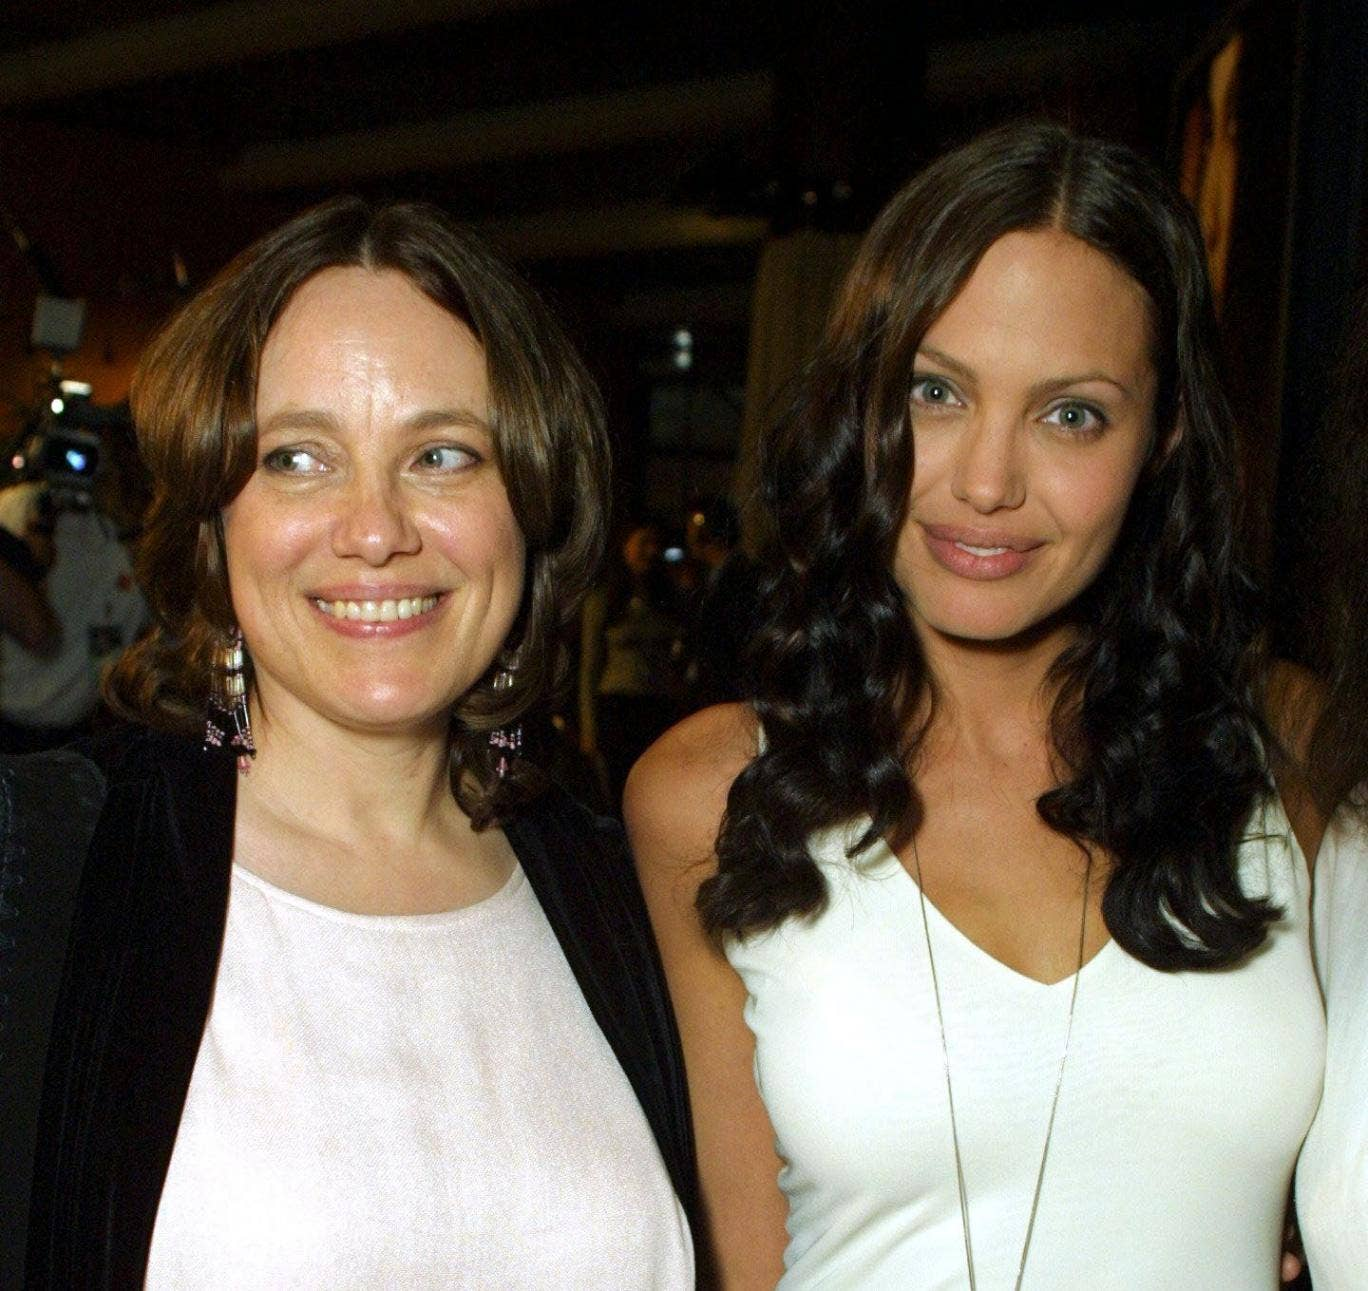 Angelina Jolie and her mother Marcheline Bertrand 31 Jul 2001. The actress has undergone a double mastectomy having been given an 87% chance of contracting breast cancer. Her mother died of the disease aged 56.